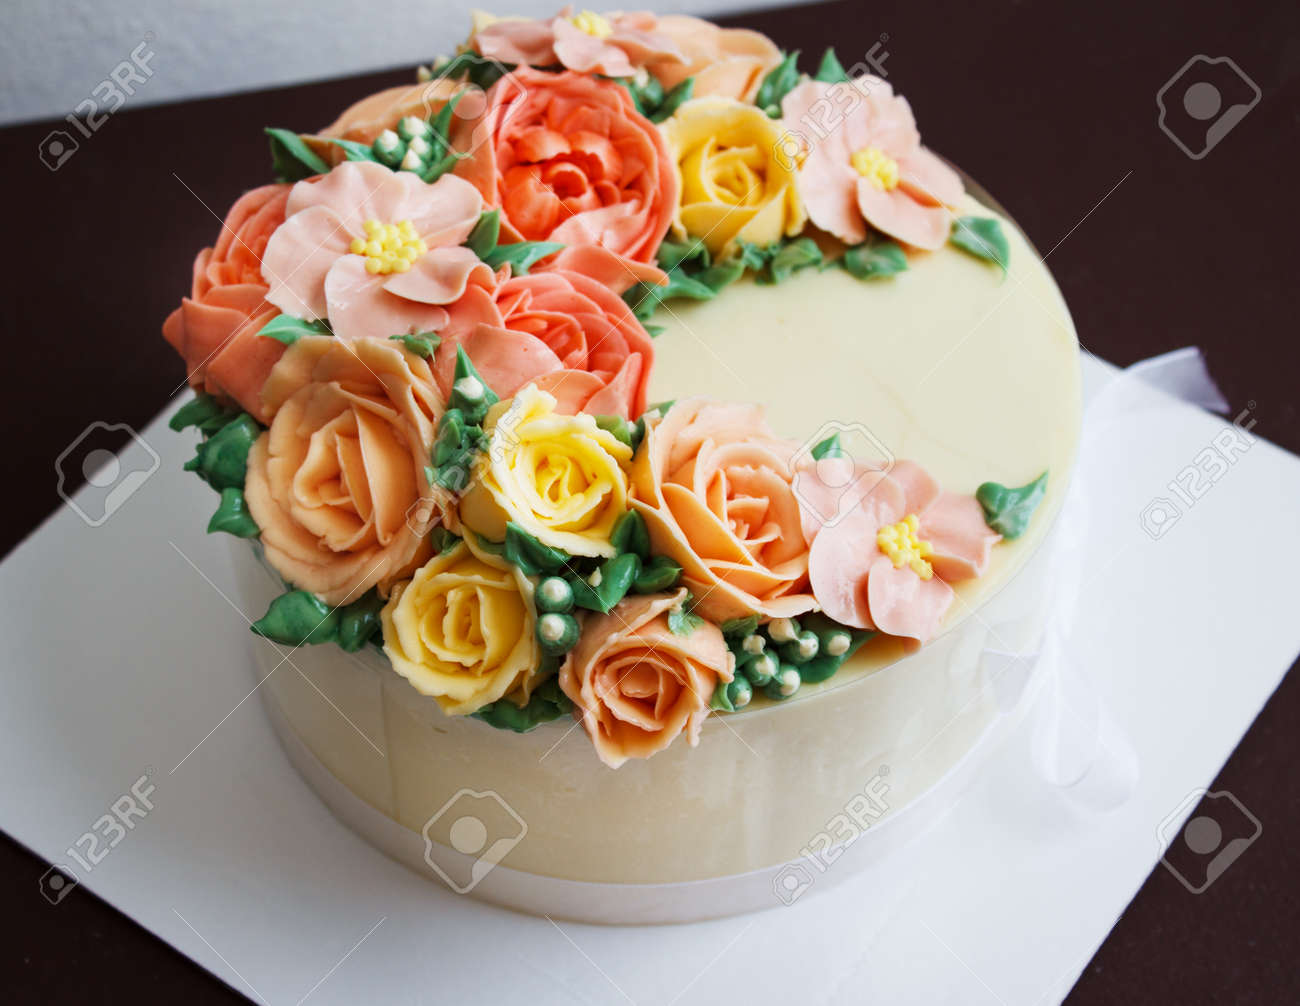 Birthday cake with flowers rose on white background stock photo birthday cake with flowers rose on white background stock photo 80838533 izmirmasajfo